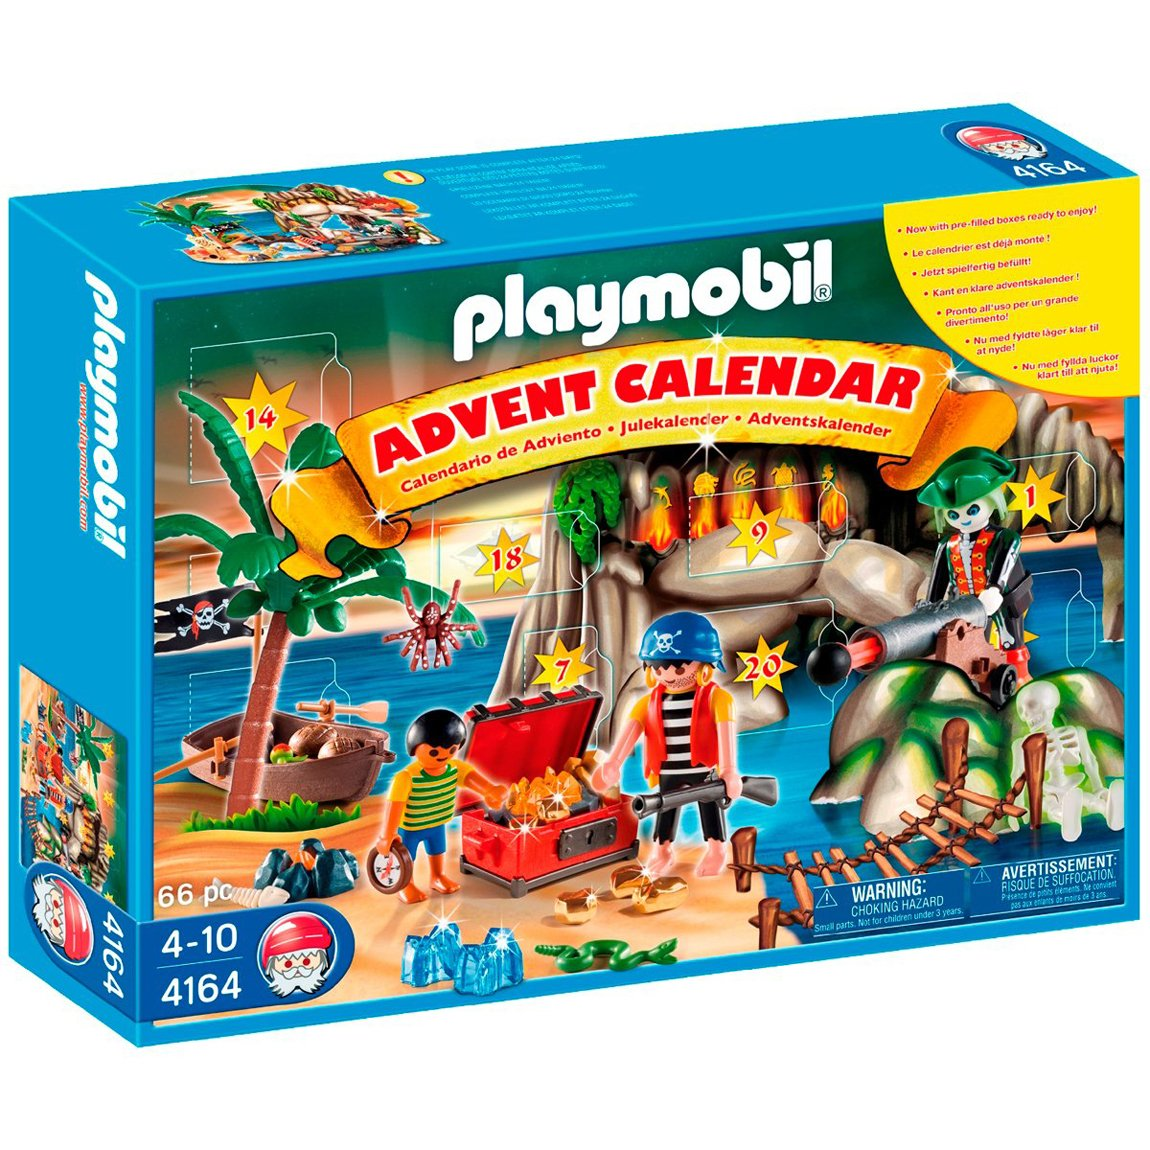 Amazon.co.uk Best Sellers: The most popular items in Advent Calendars